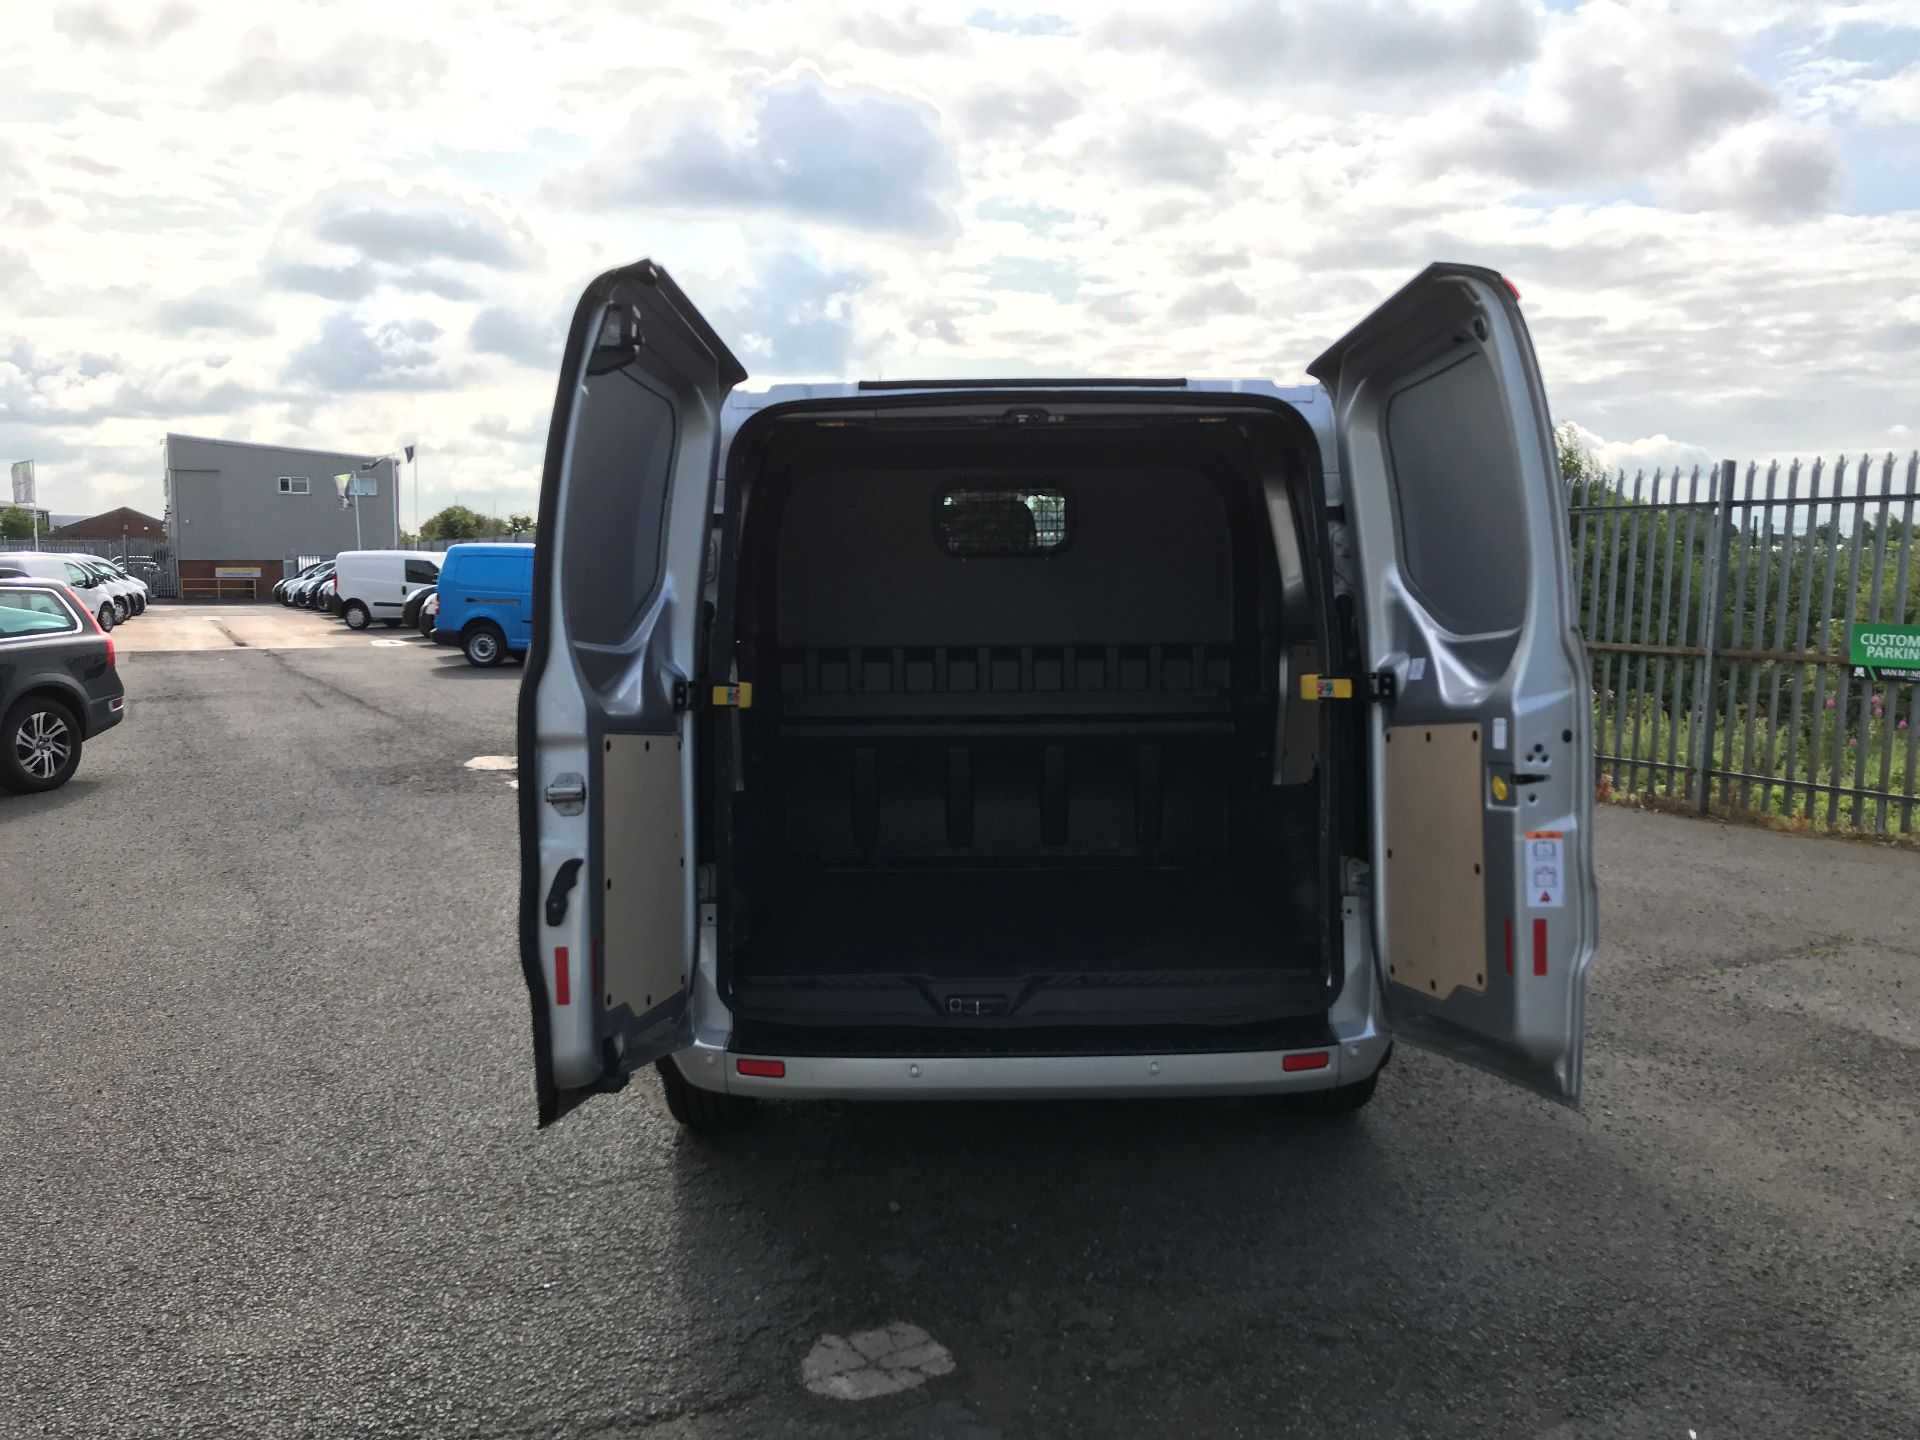 2018 Ford Transit Custom 320 L1 2.0TDCI 130PS LOW ROOF DOUBLE CAB LIMITED EURO 6 (HG68MPZ) Image 19